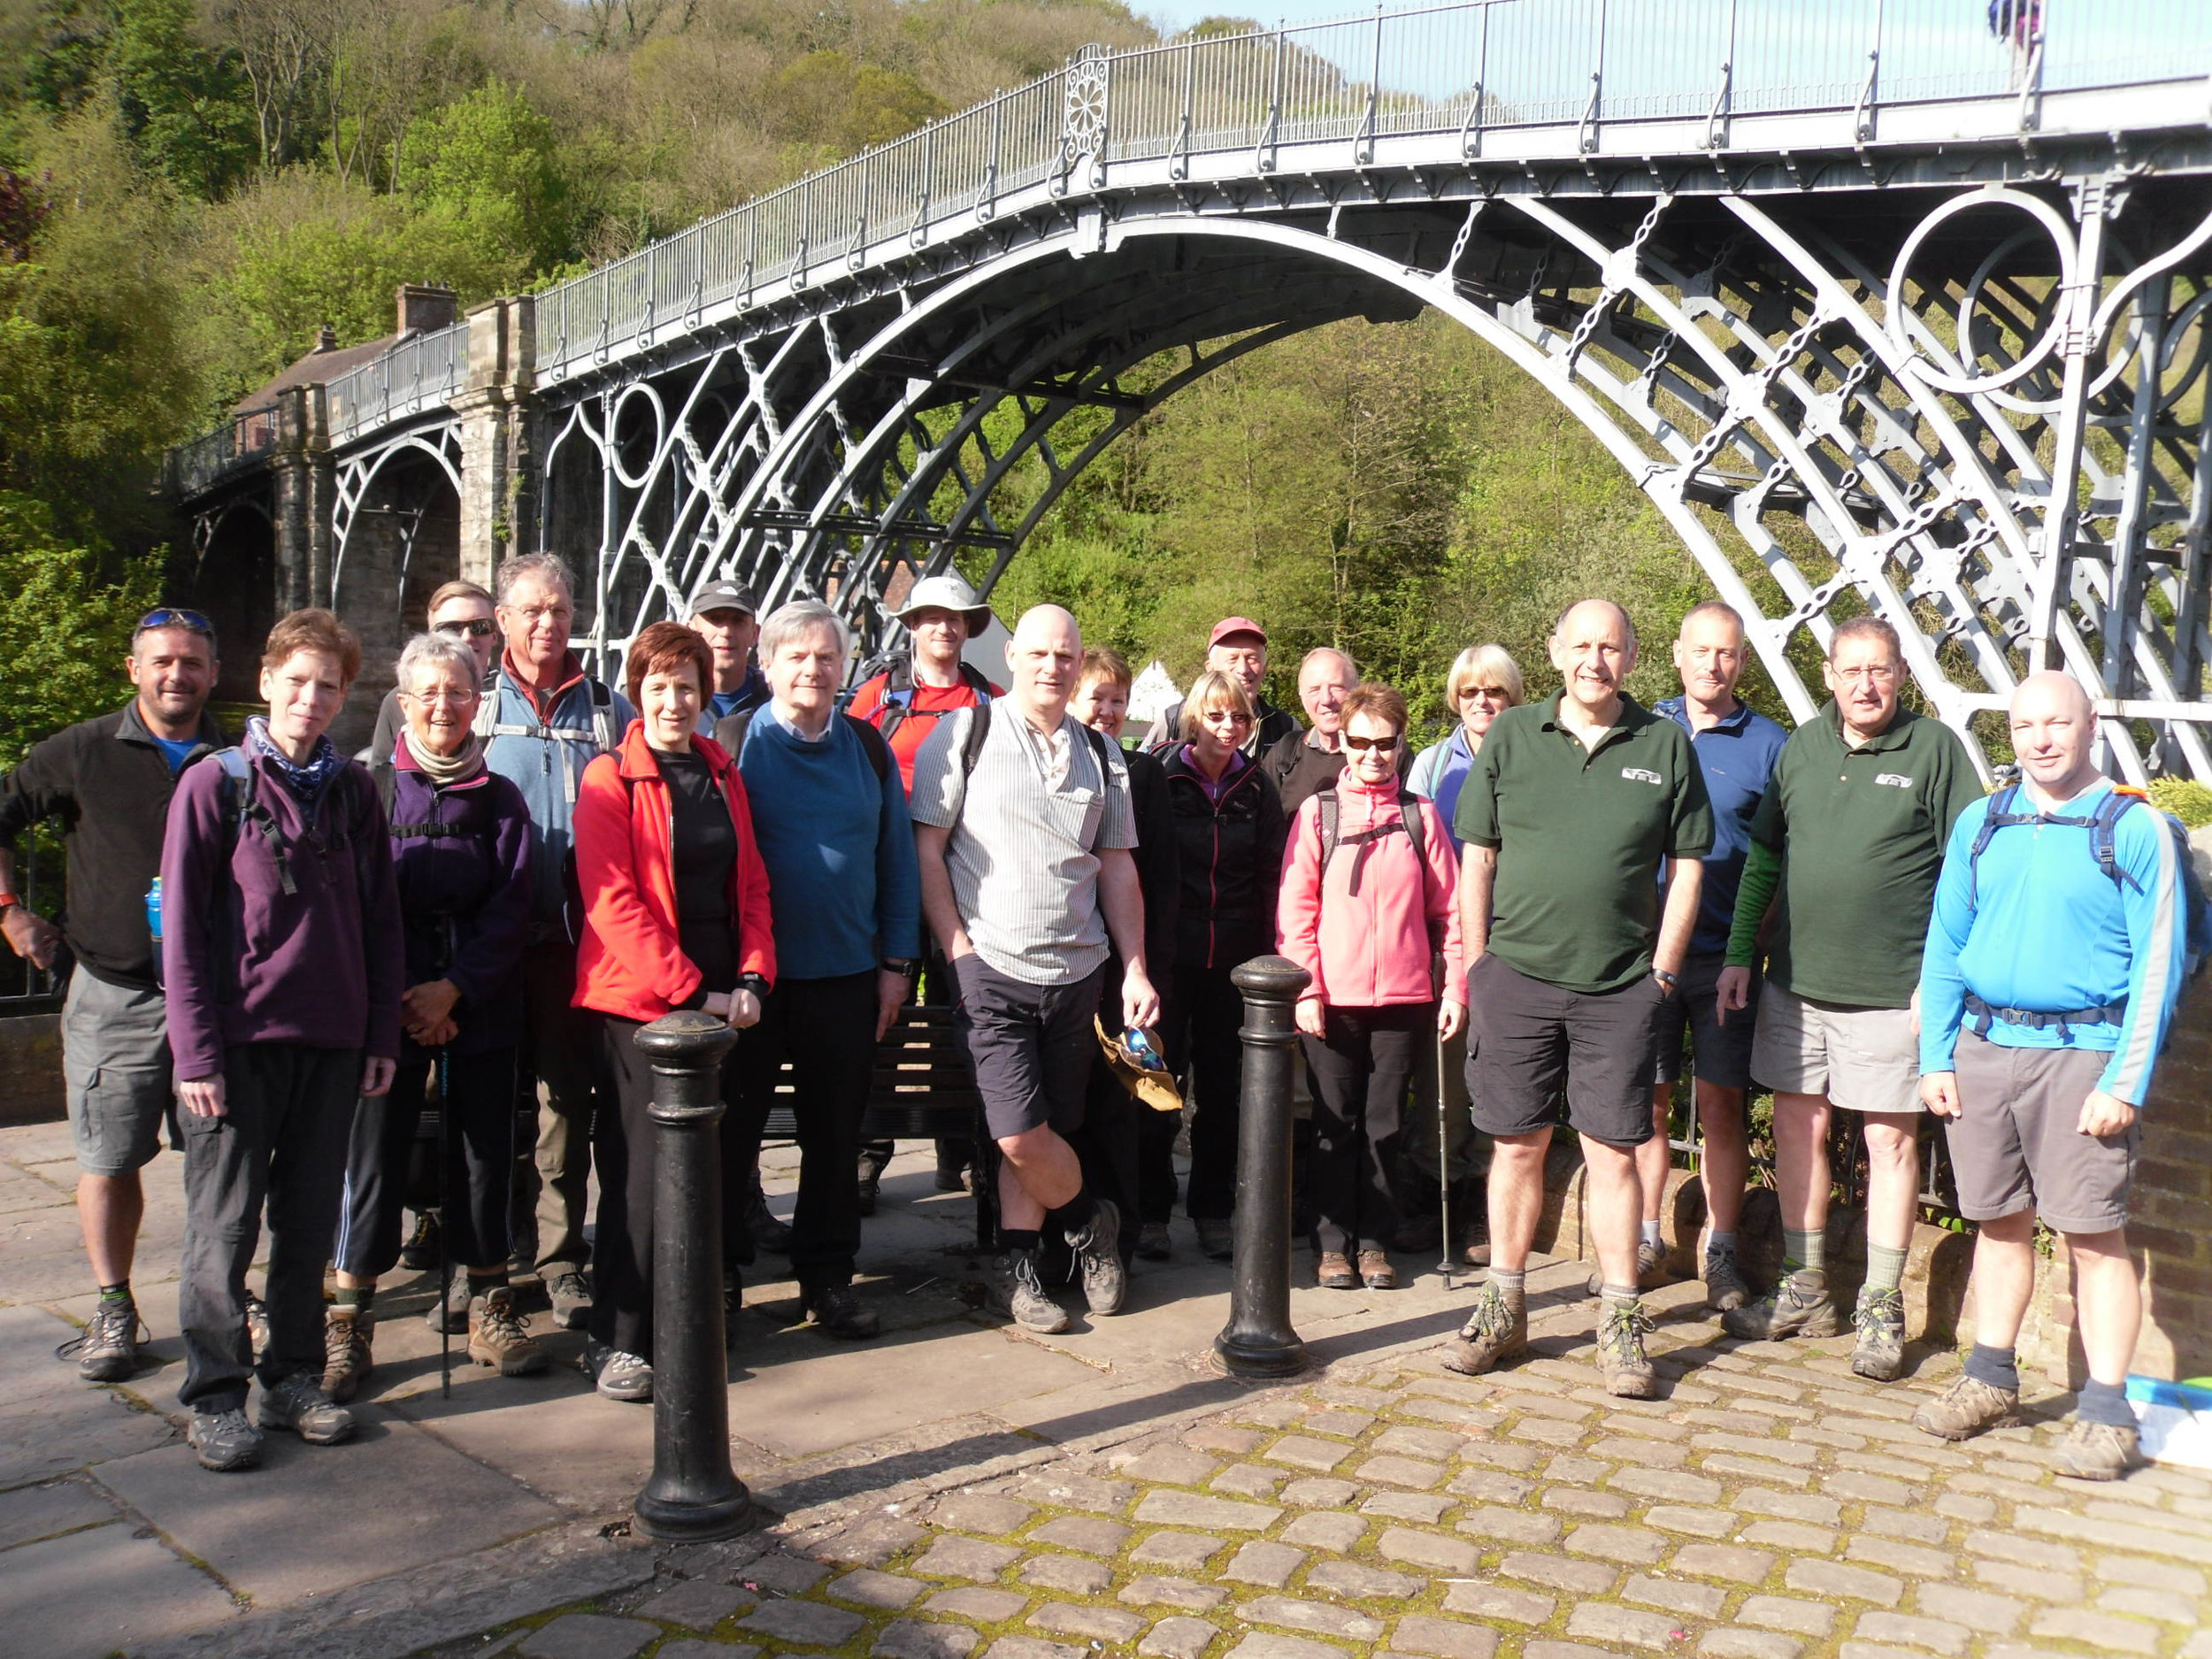 Ironbridge Gorge - - Supplied